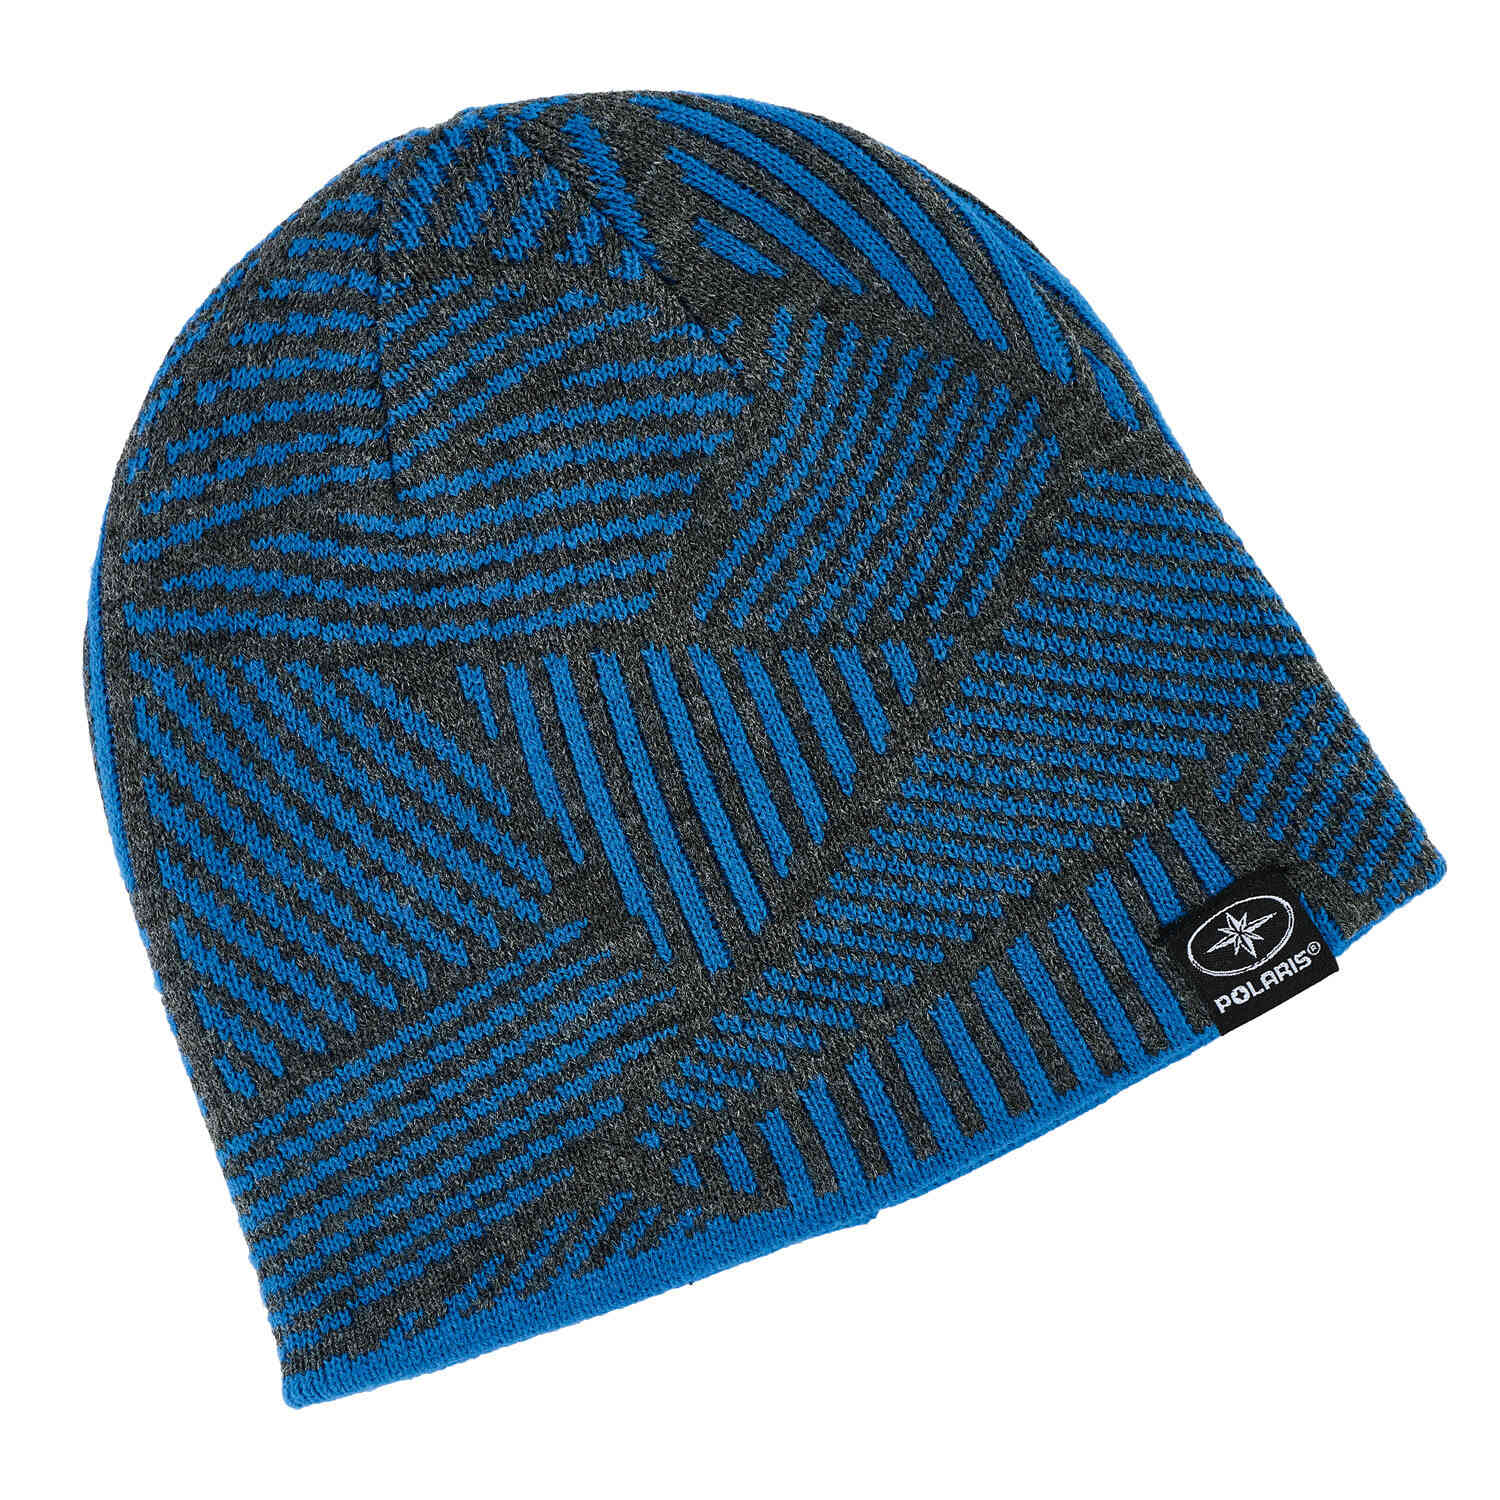 93af139366c Reversible Jersey Knit Beanie - Blue